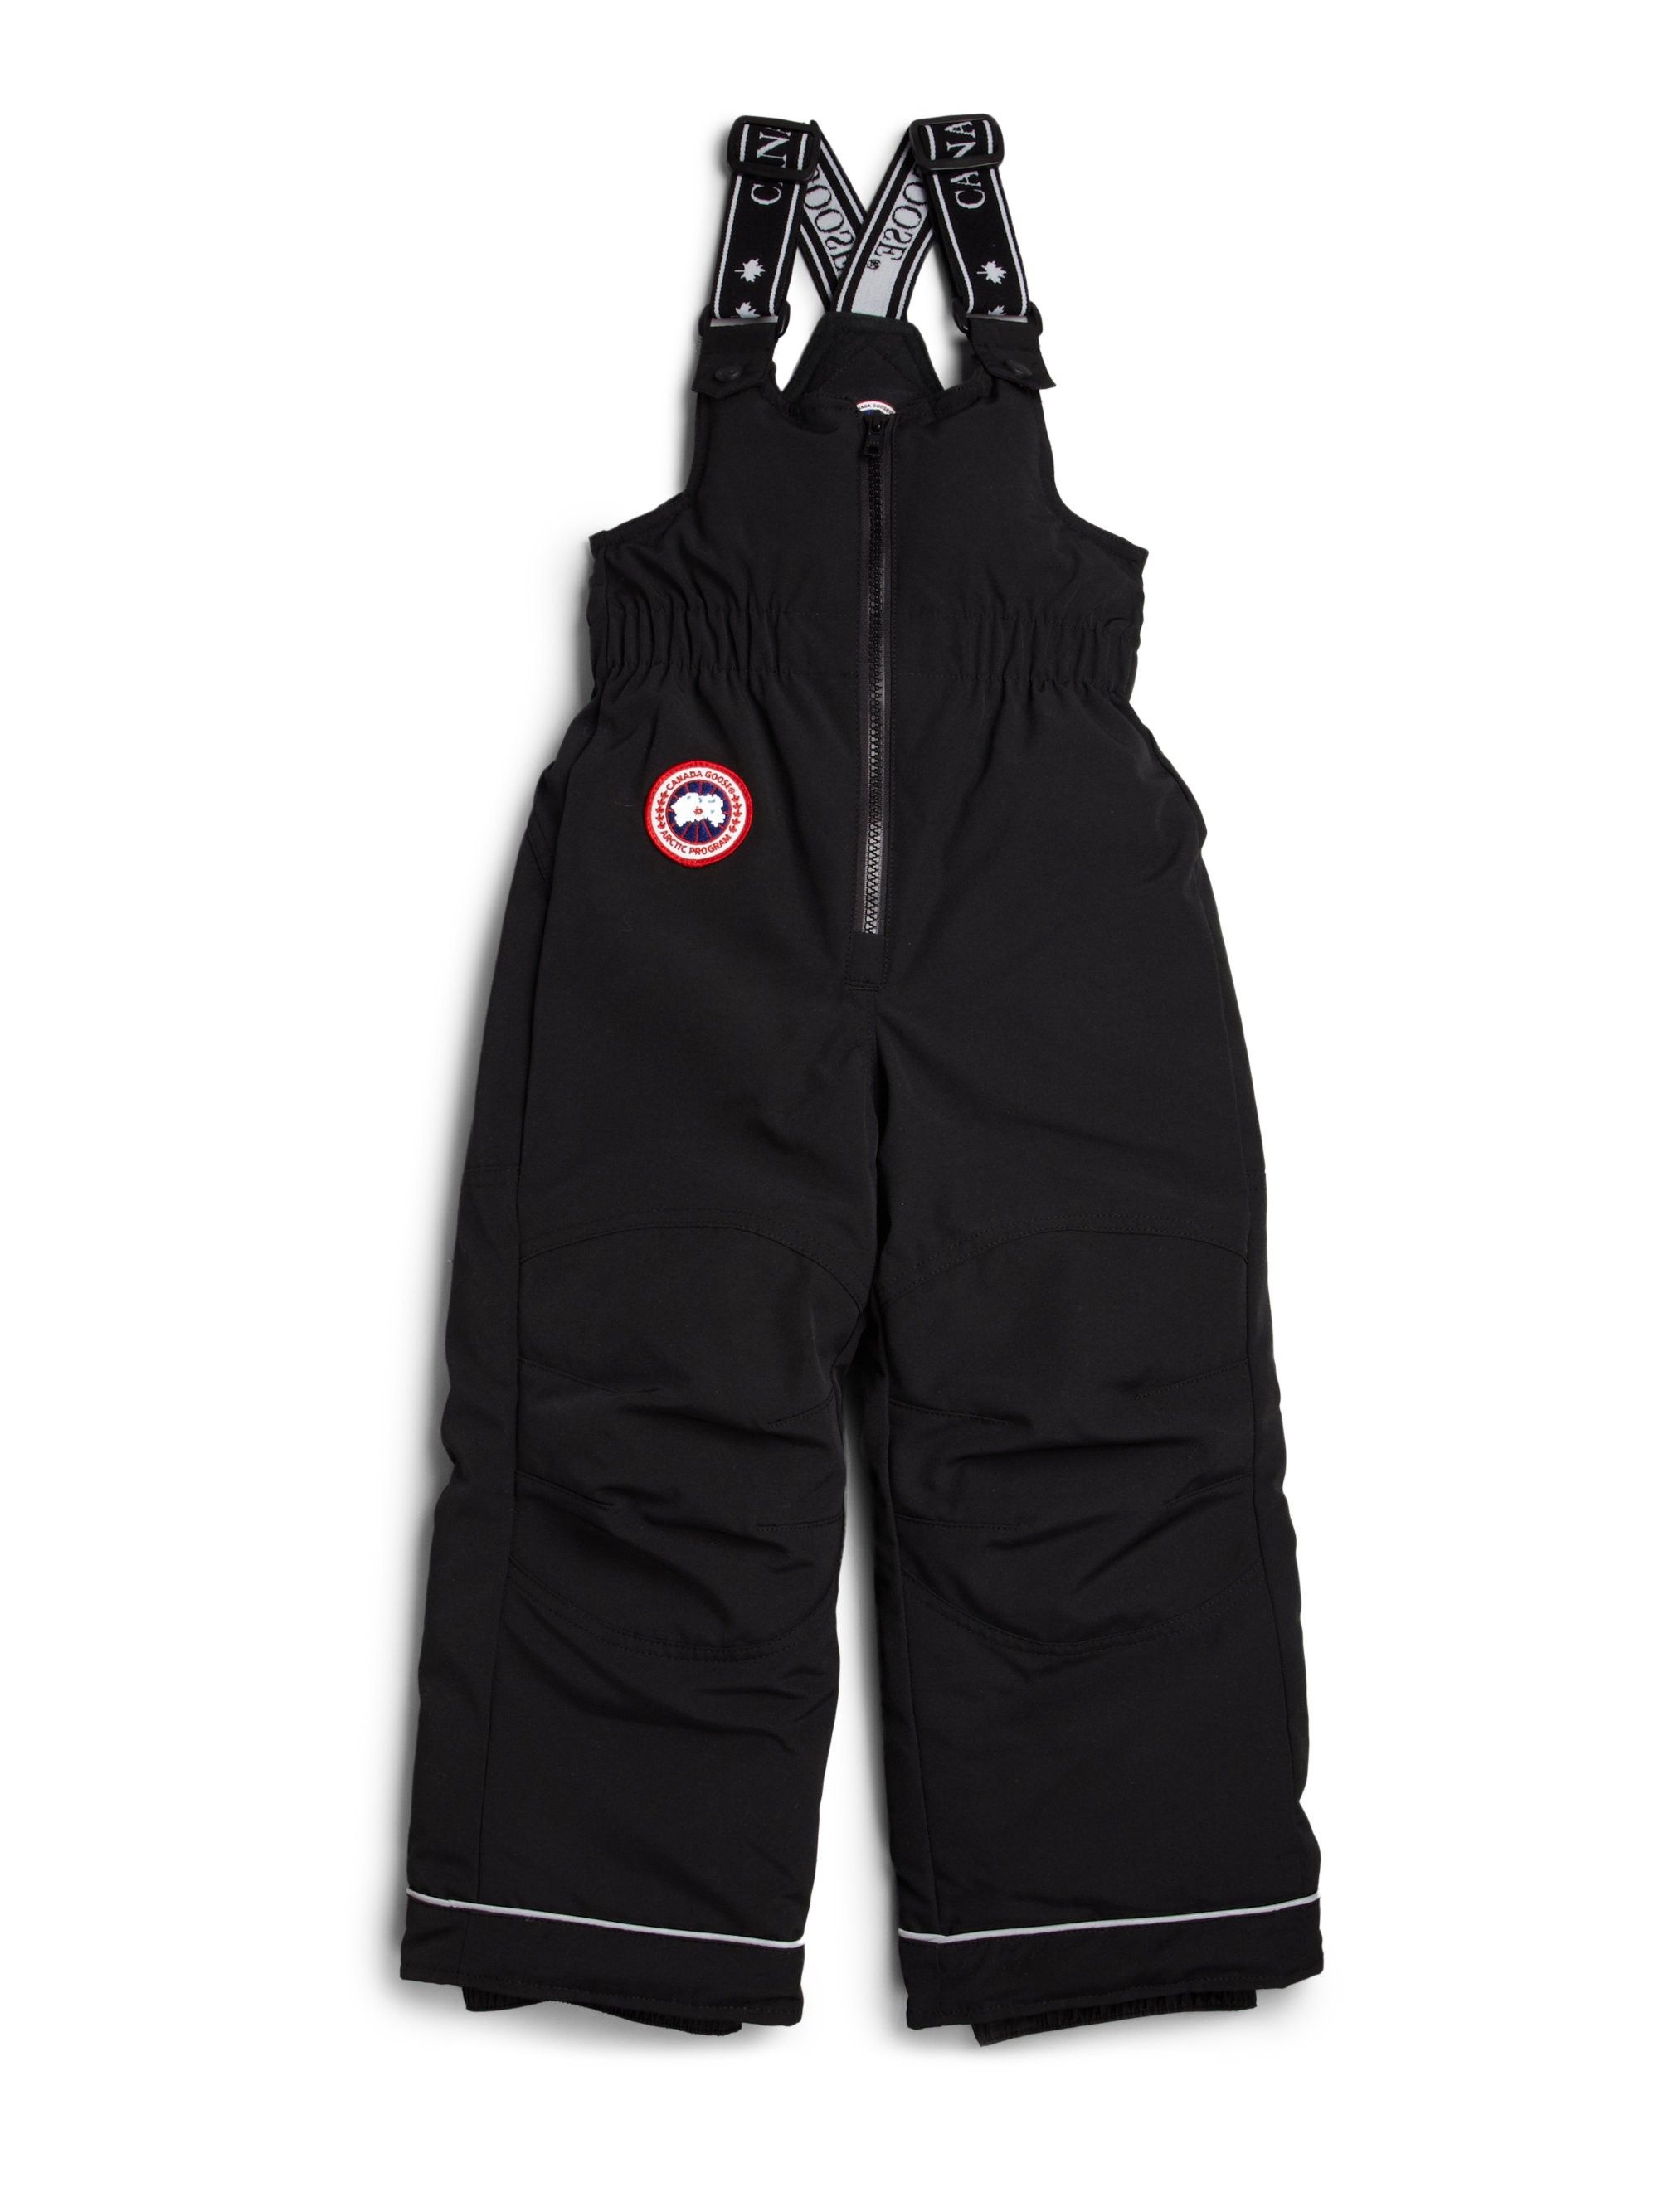 2733ee686 Canada Goose Toddler s   Little Kid s Down Snow Pants - Black 4-5 ...